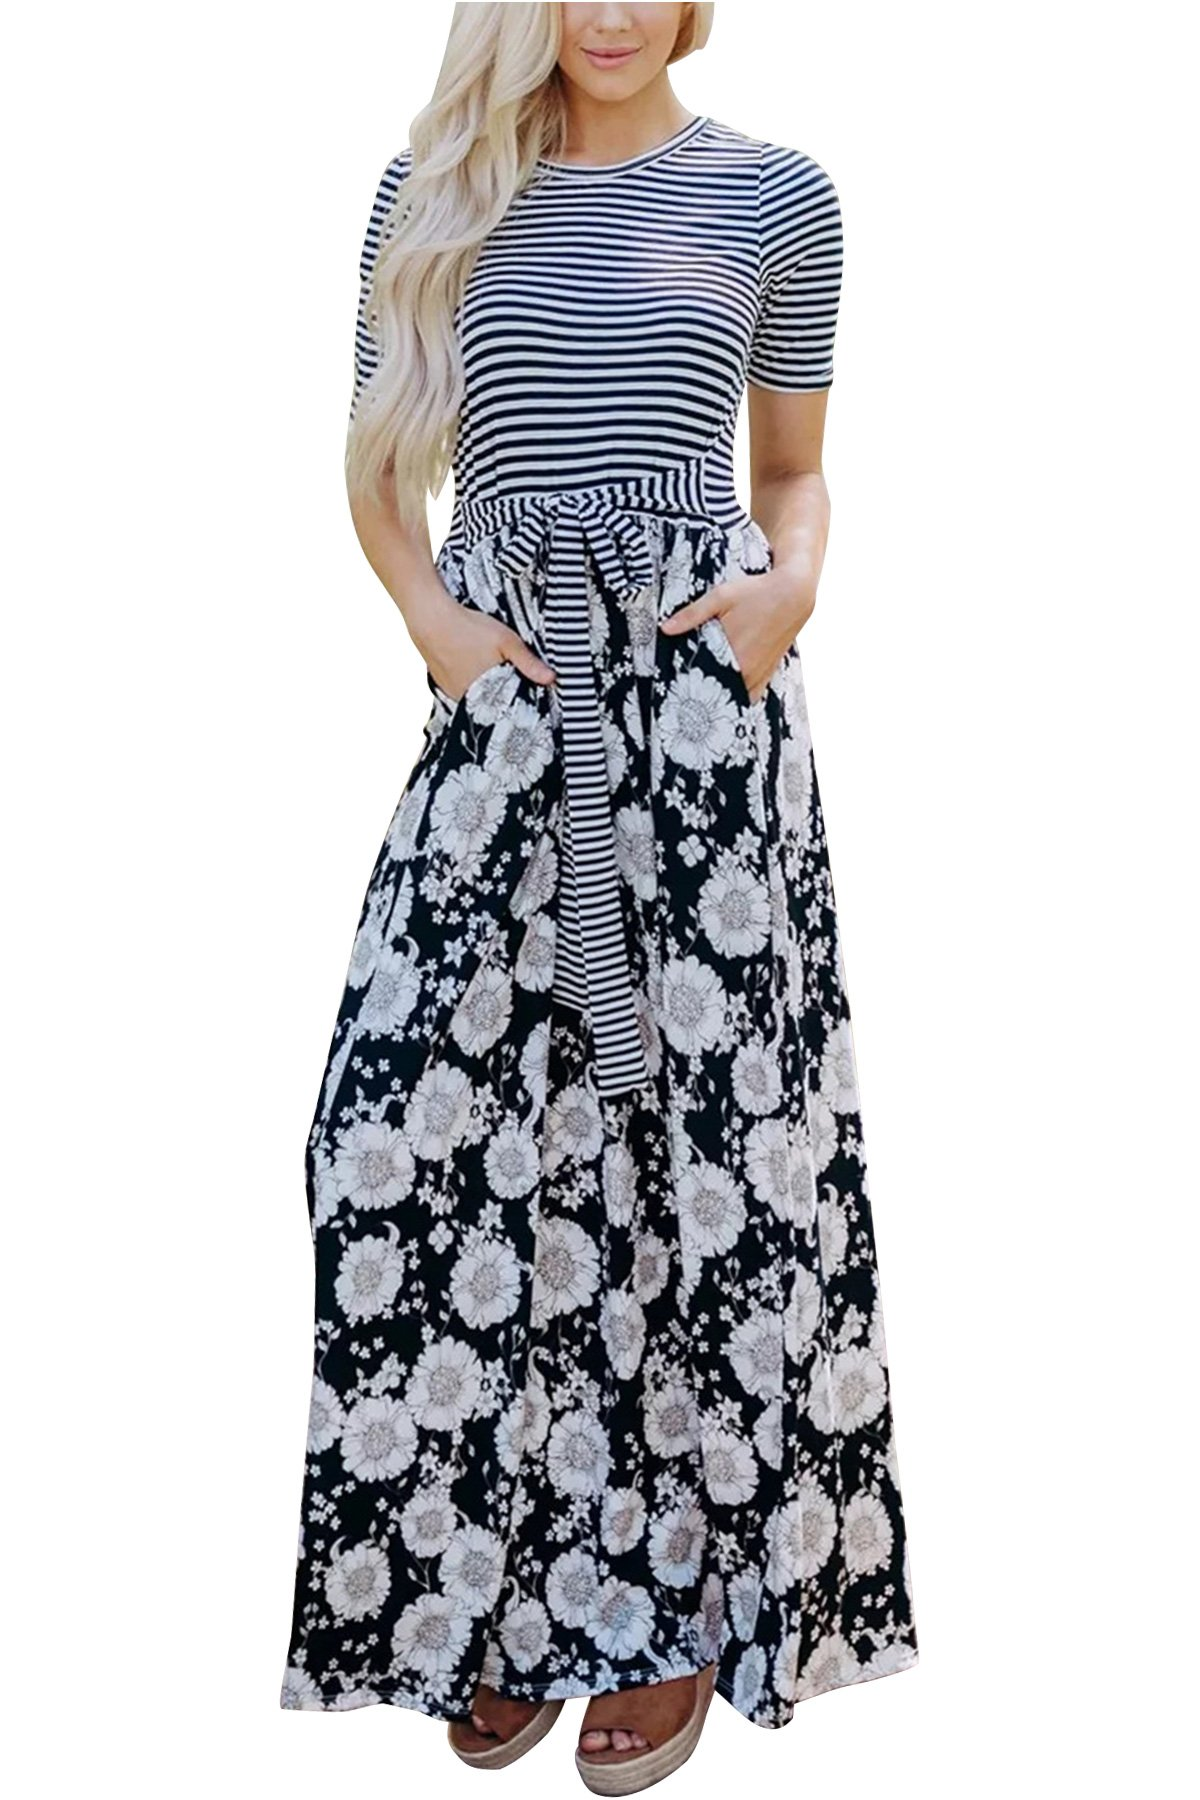 JOXJOZ Women's Casual Maxi Dress with Sleeves Striped Floral Long Party Dresses with Pockets ((Short Sleeve) Black, L)